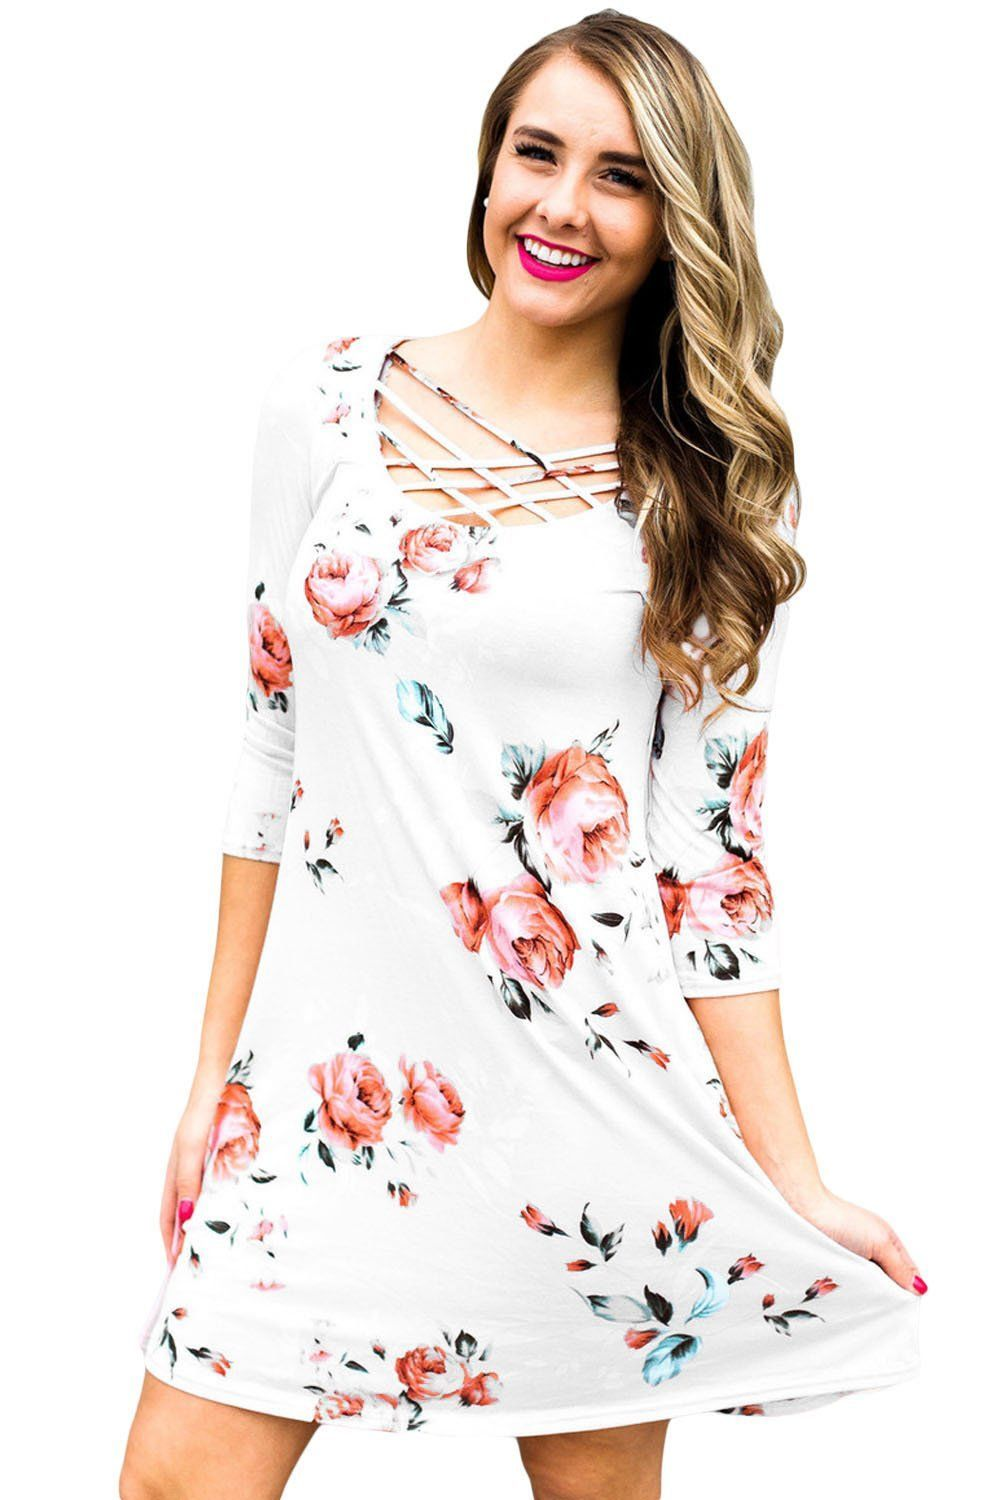 White Fence Neck Floral Print T Shirt Dress modeshe.com